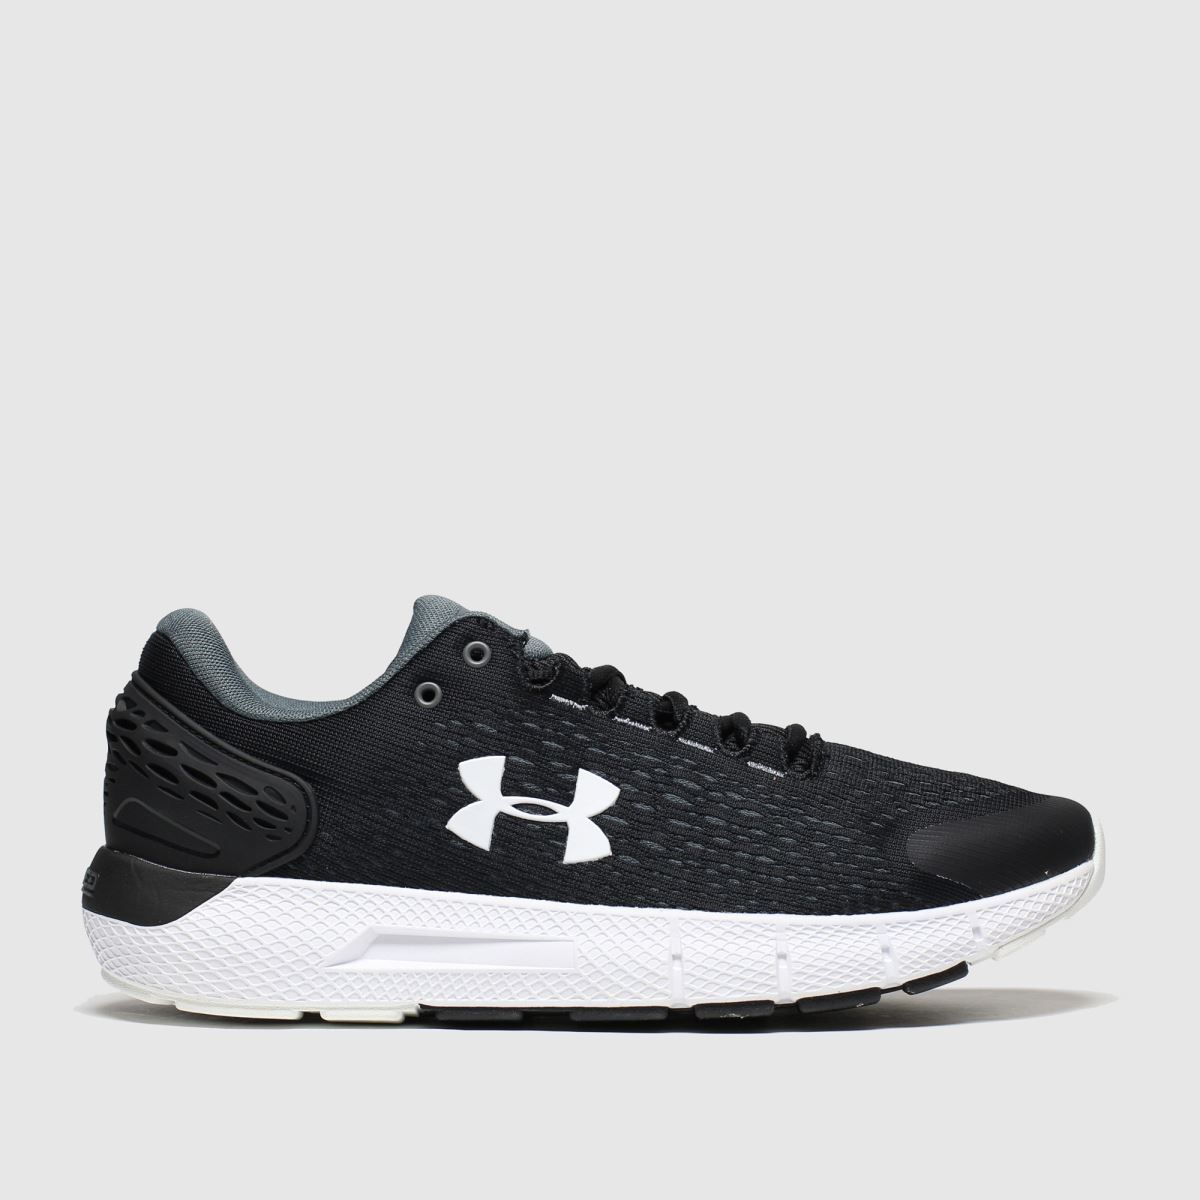 Under Armour Black & White Charged Rogue 2 Trainers